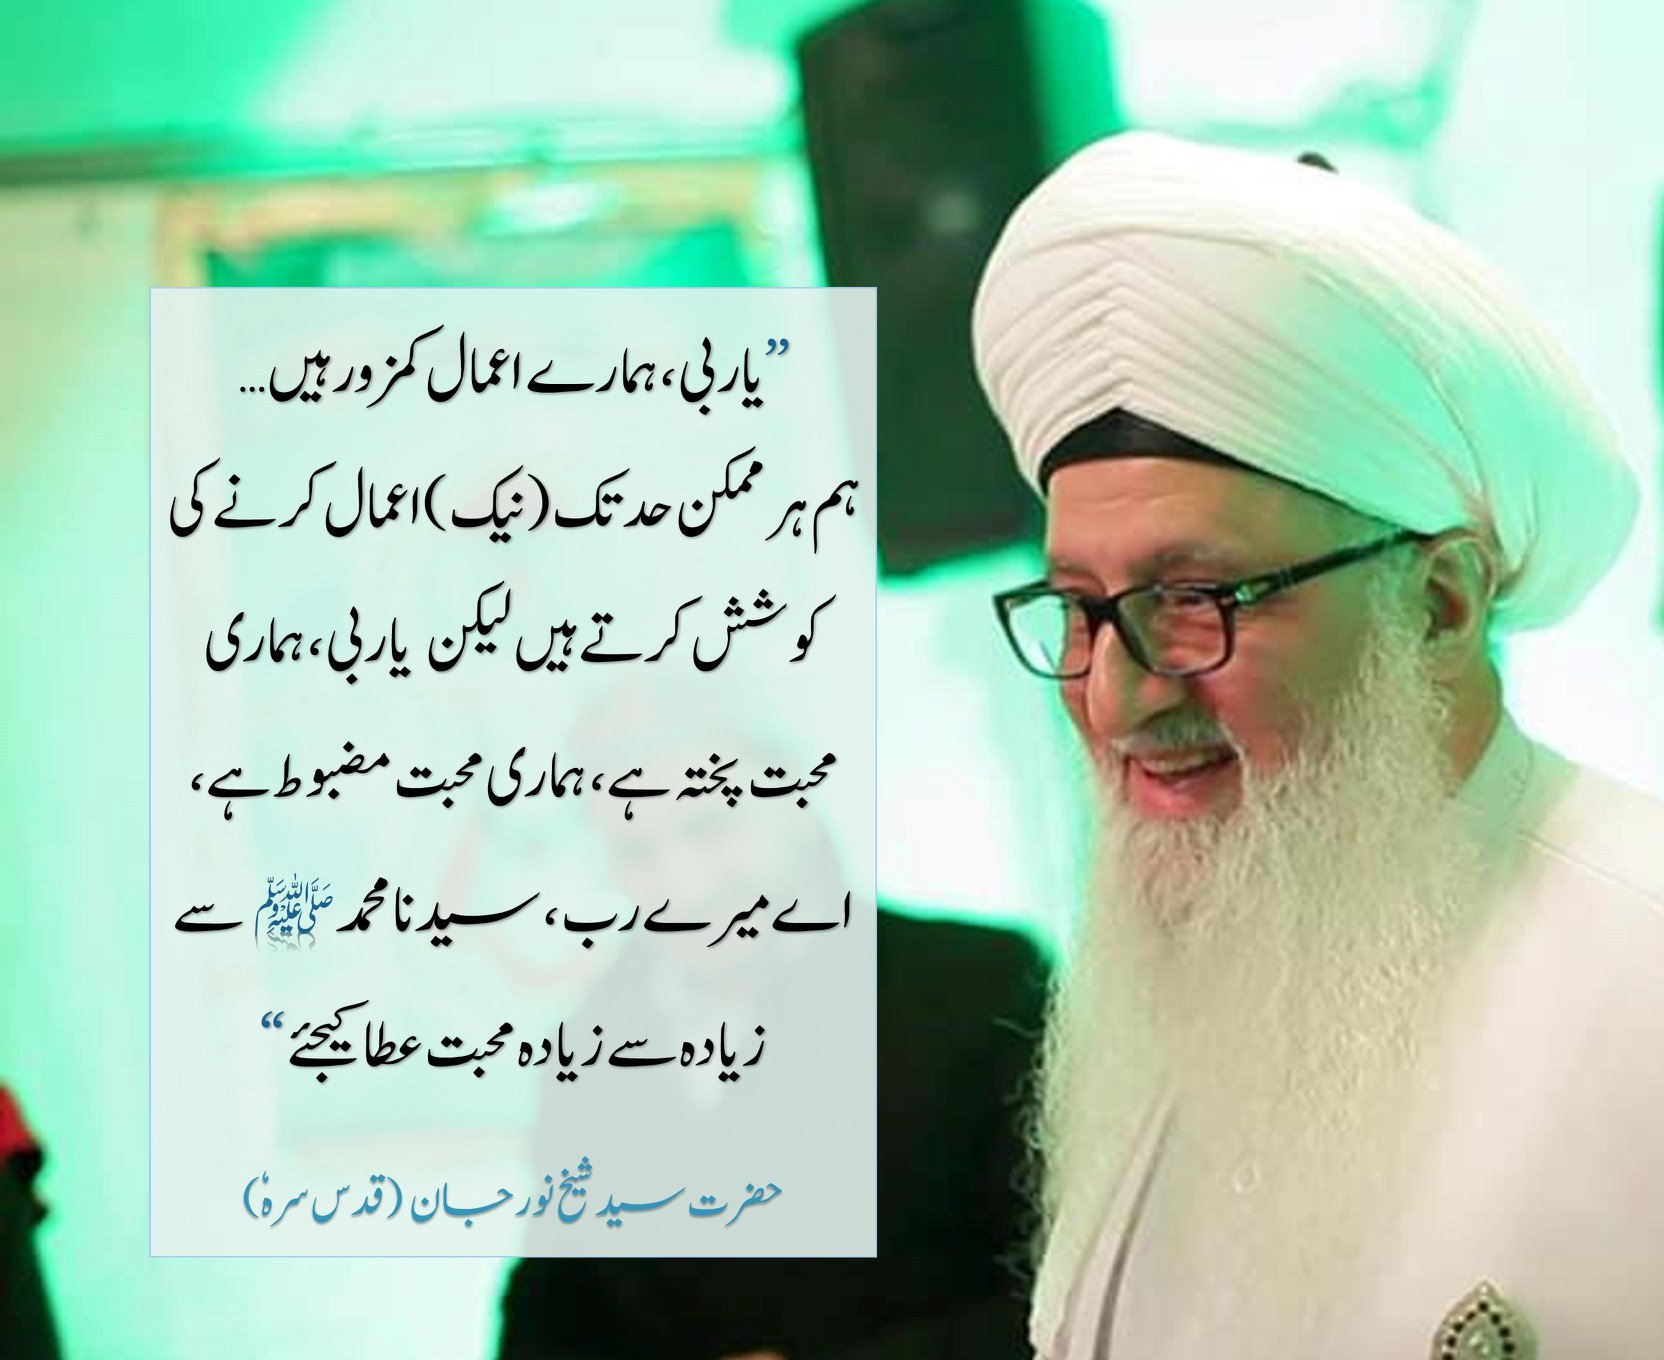 Only love can open the heart  to the presence of Sayyidina Muhammad ﷺ   اپنے لئے...